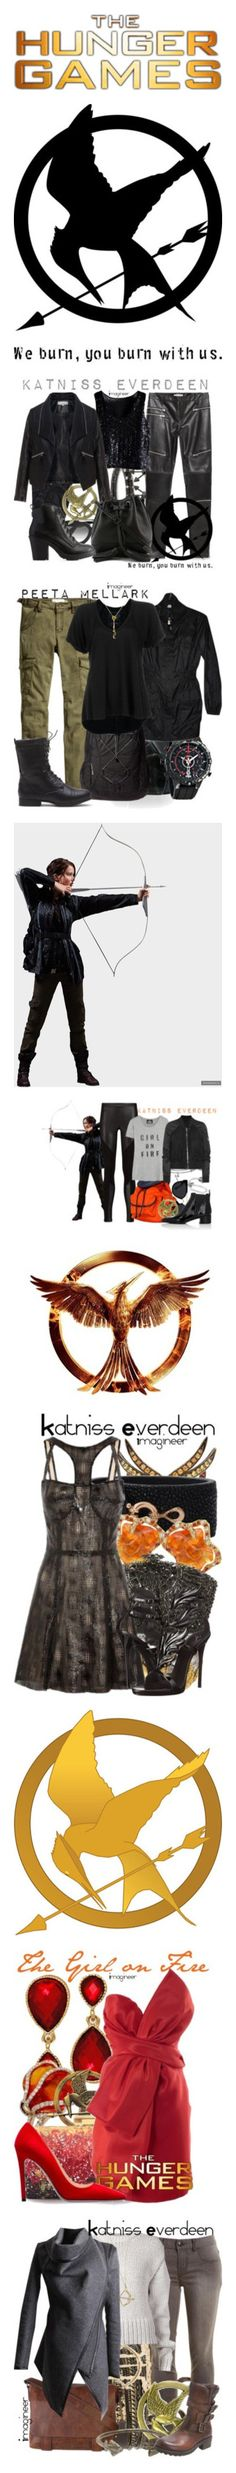 """""""The Hunger Games"""" by claucrasoda ❤ liked on Polyvore featuring hunger games, the hunger games, fillers, backgrounds, art, quotes, text, words, effects and saying"""